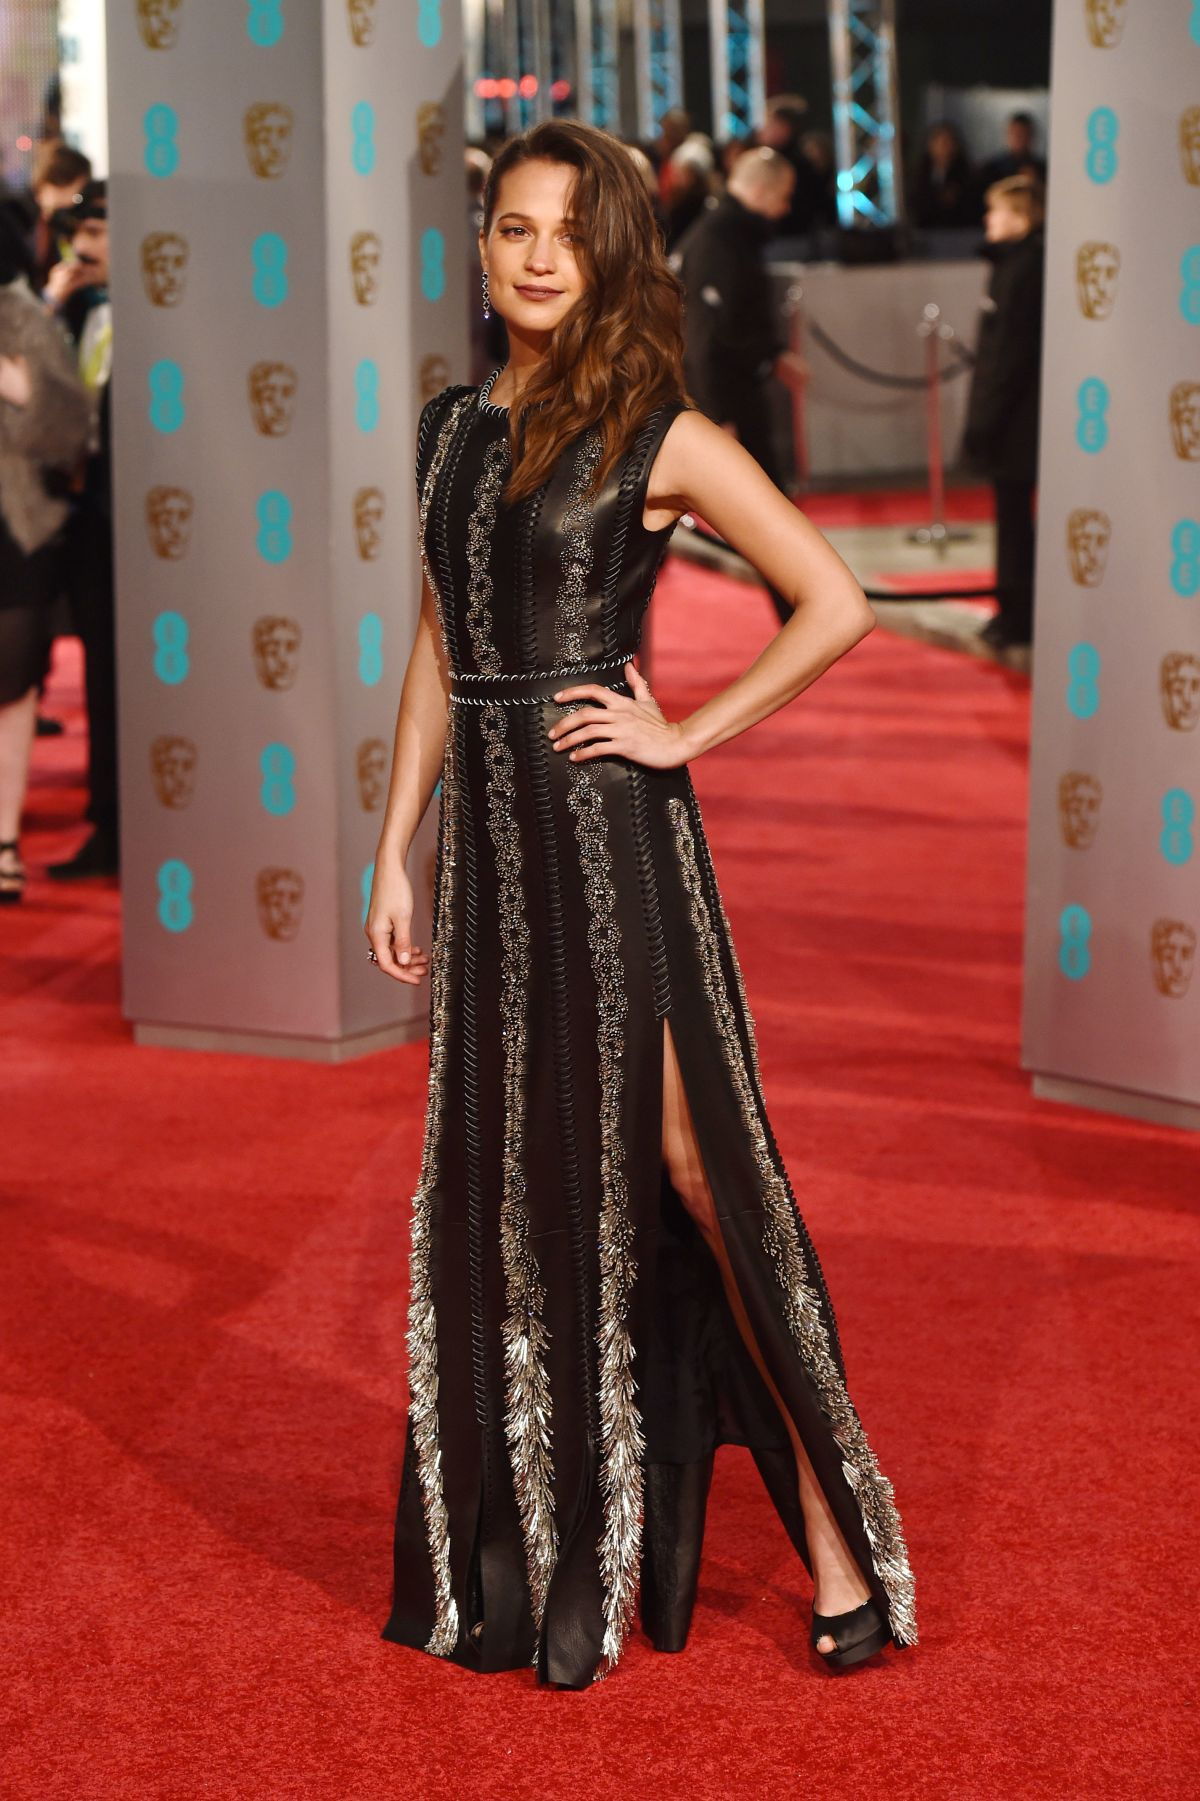 Alicia Vikander At EE British Academy Film Awards In London